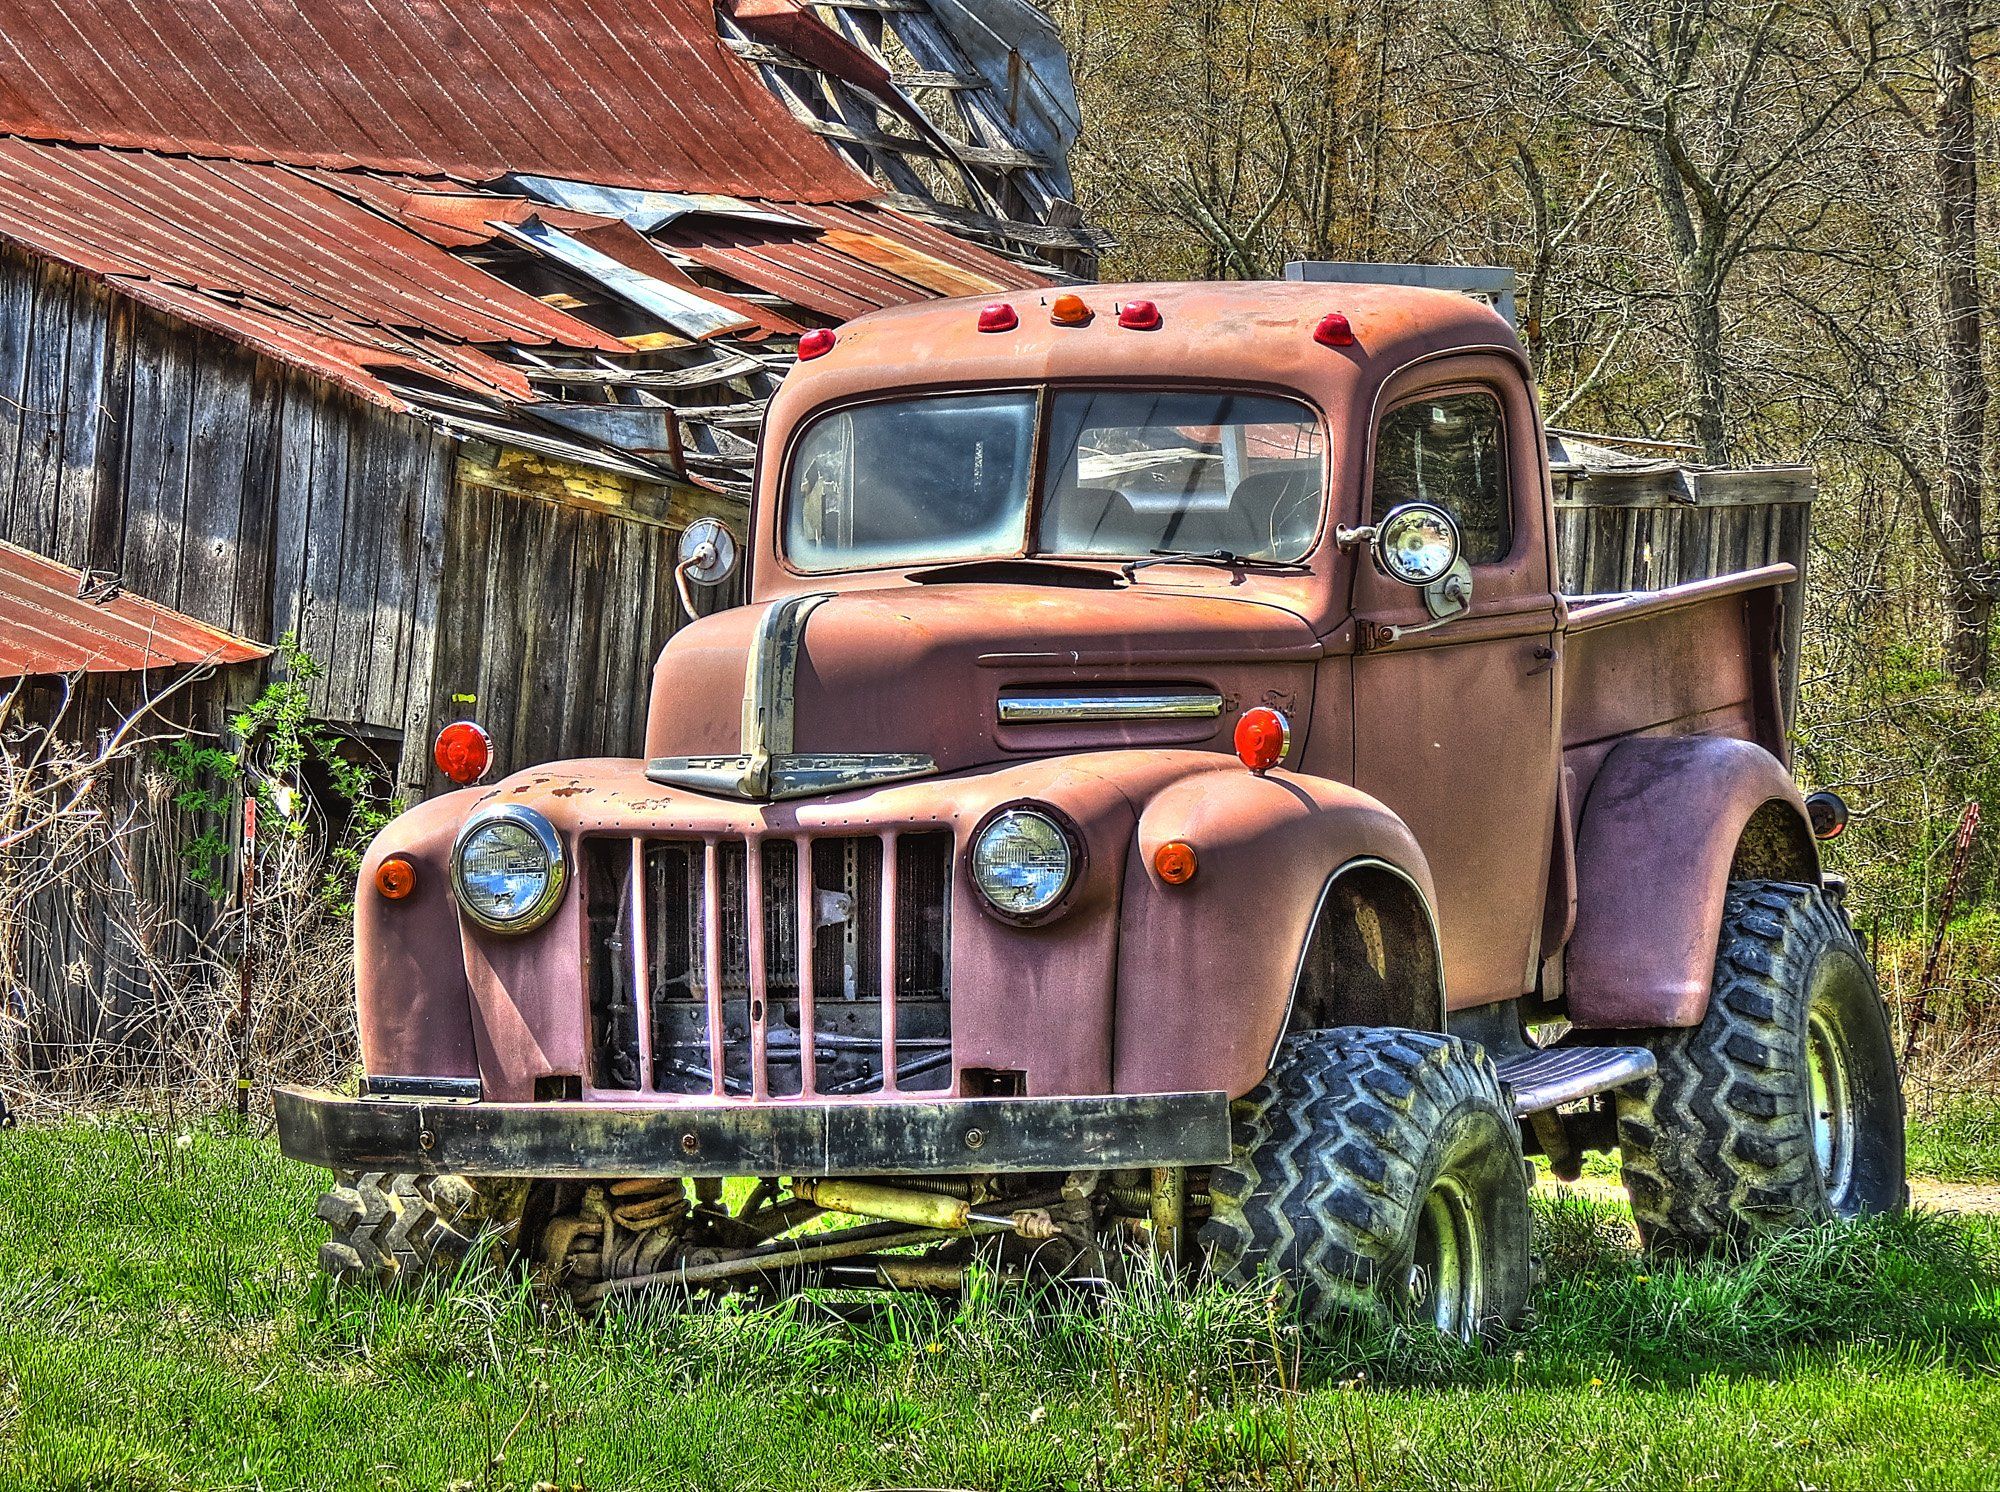 Rusty old truck 1940s Ford Truck wallpaper background 2000x1492